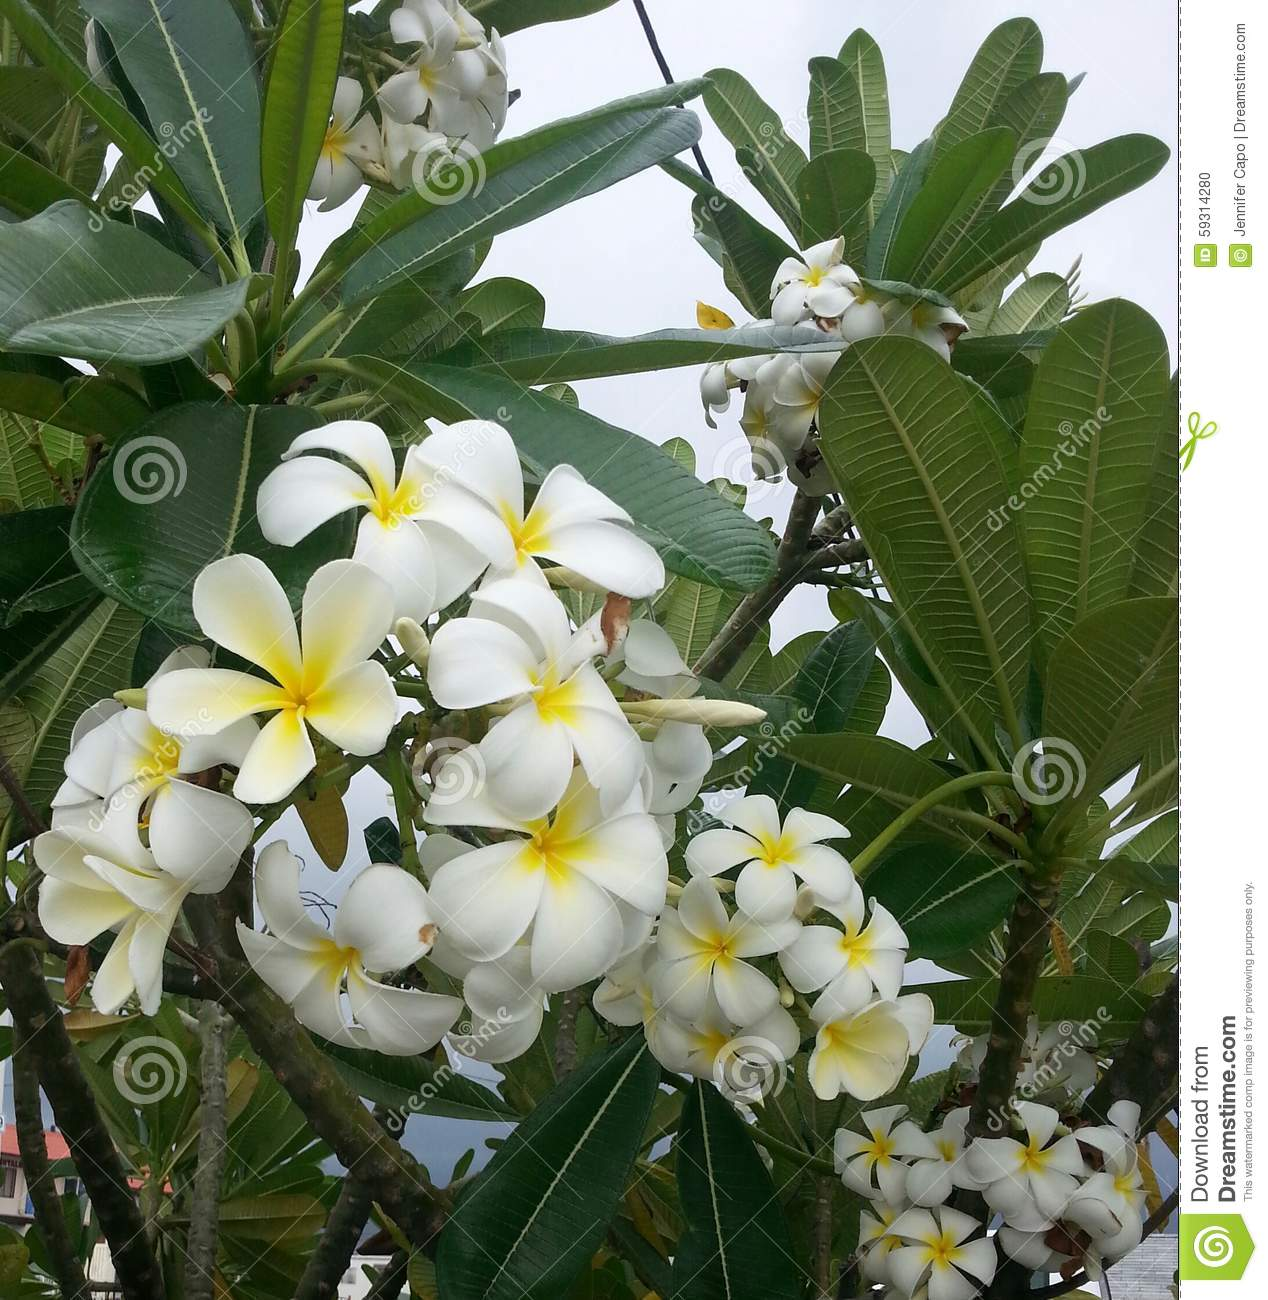 Plumeria tree with white and yellow flowers stock photo image of download comp mightylinksfo